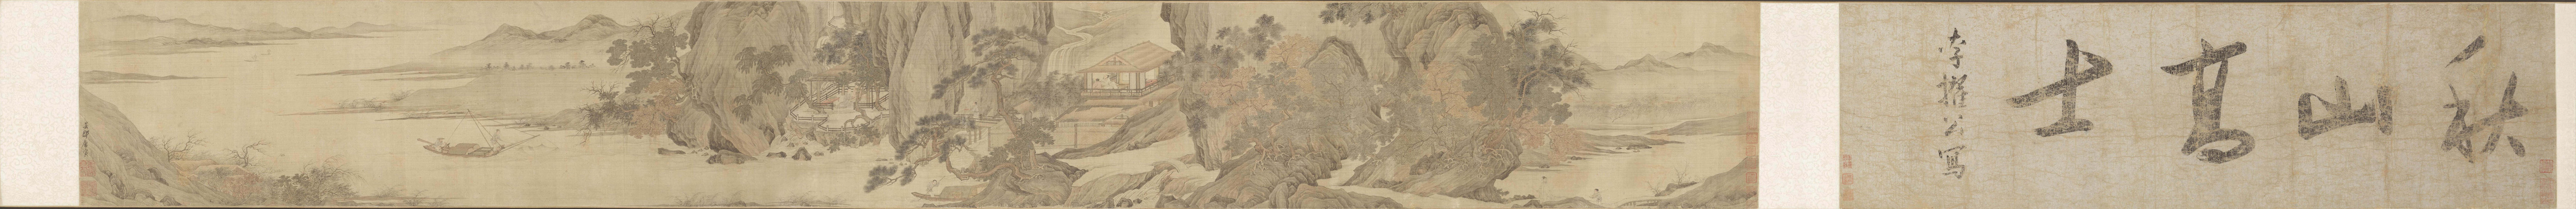 Tang Yin: Scholar-Hermits in the Autumn Mountains